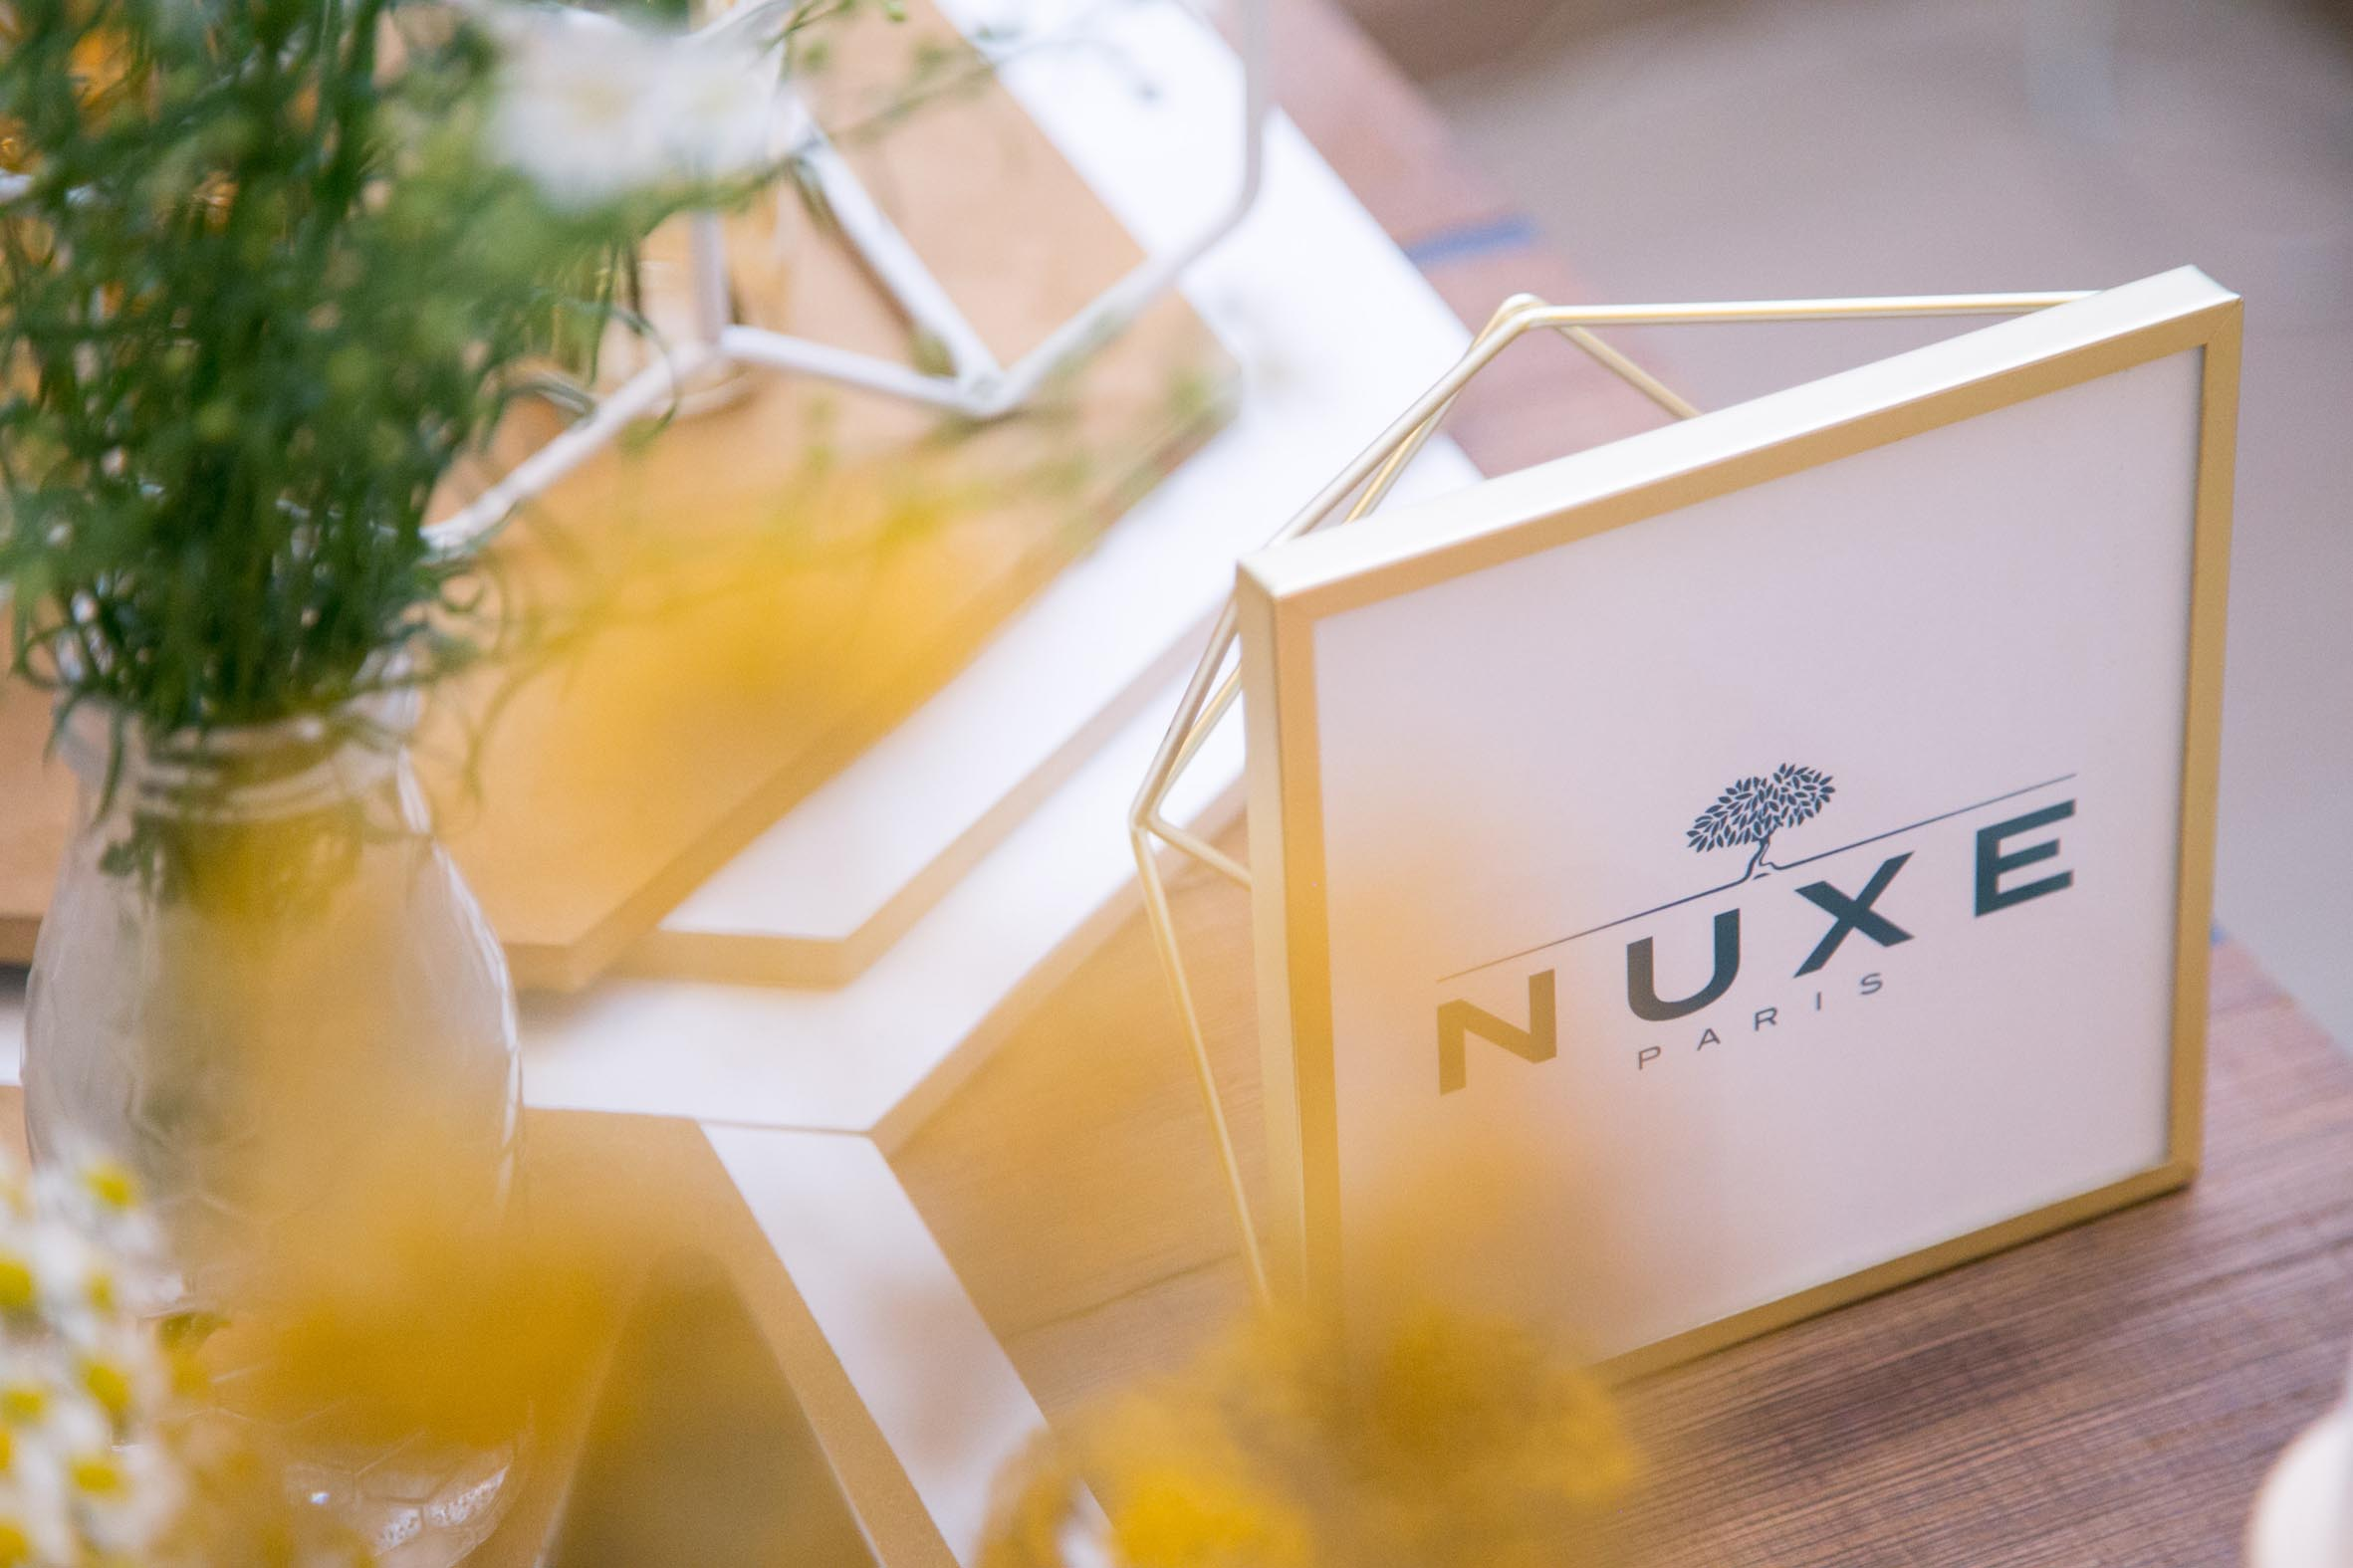 Nuxe pressday Set Styling Project @ MeetLab Milano Brera 05